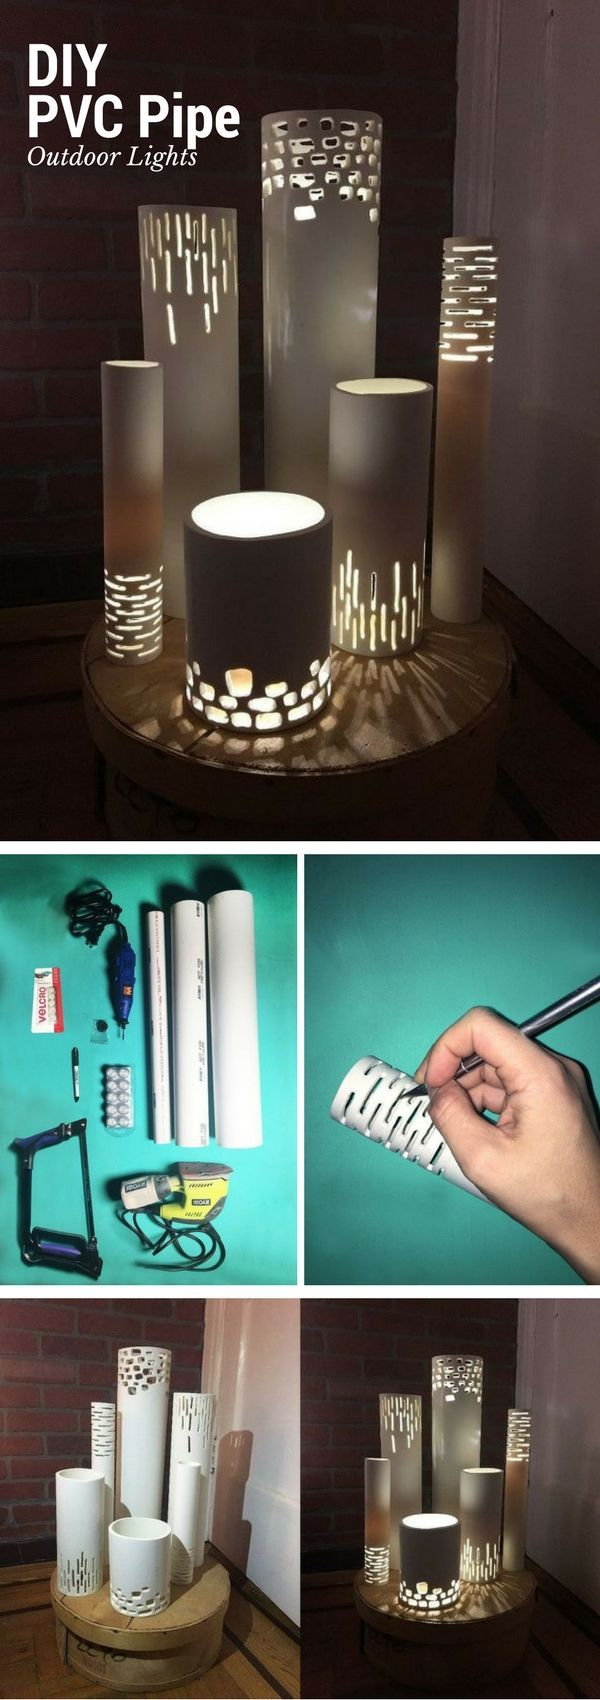 Check out the tutorial on how to make easy DIY out…